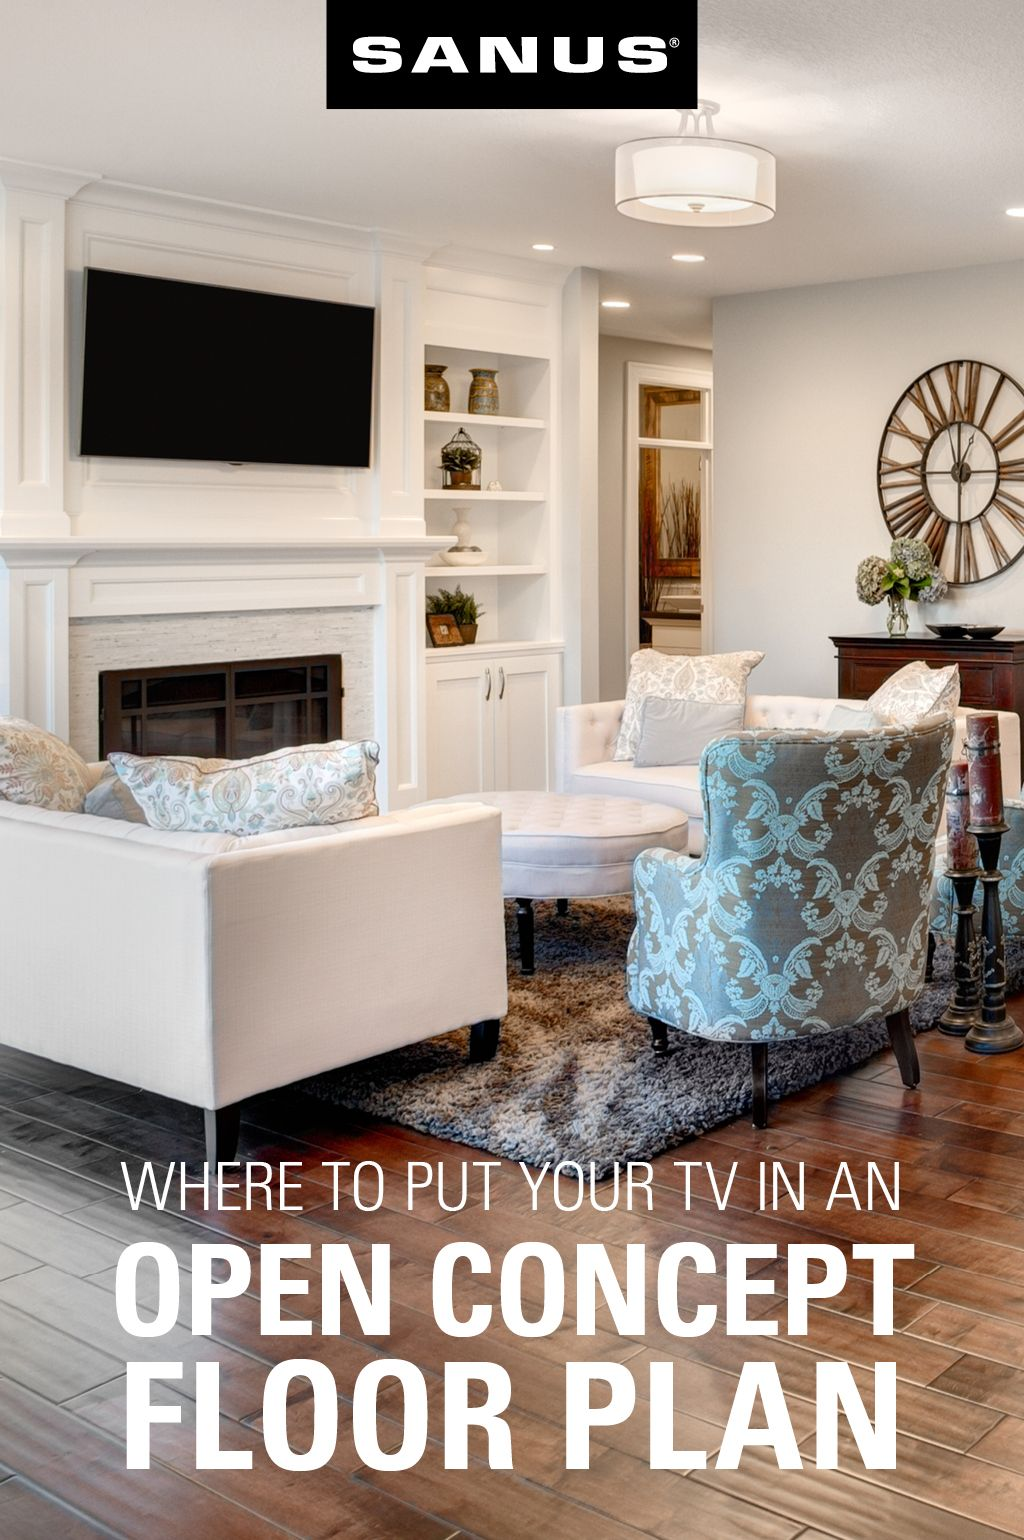 Where To Put Your Tv In An Open Concept Floor Plan Open Concept Floor Plans Open Concept Floor Plans